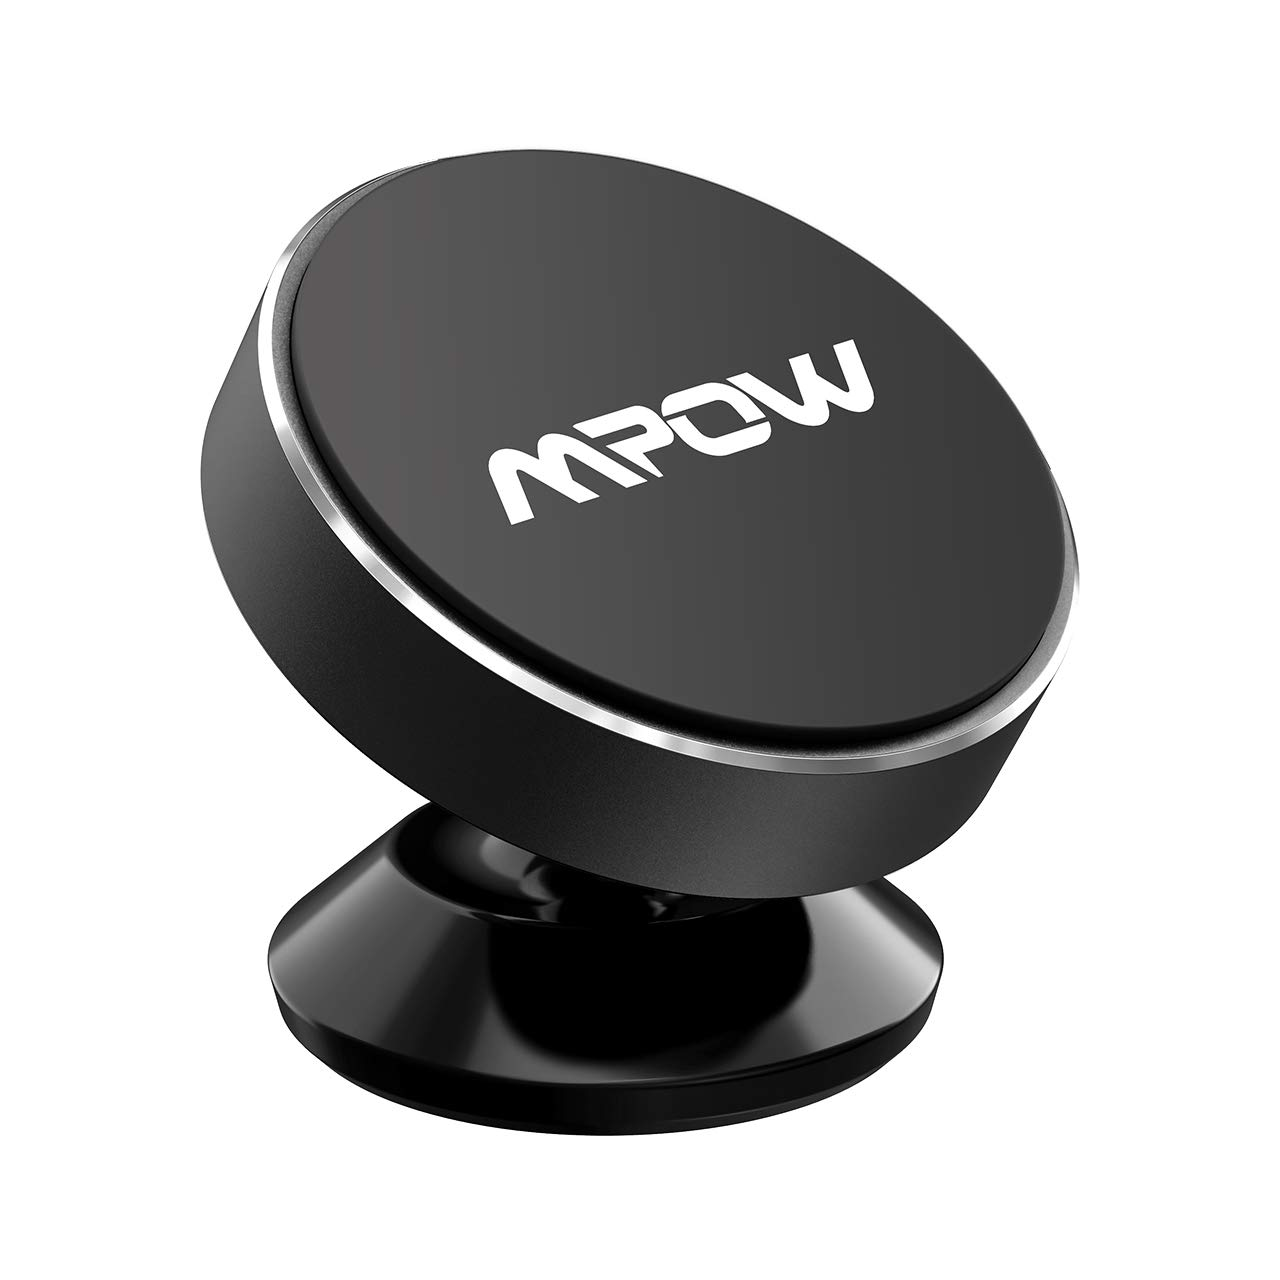 Dashboard Car Mount, Mpow Mini Magnetic Car Phone Mount, Stylish Metal Phone Holder for iPhone Xs/XS MAX/X/8/8 Plus, Samsung Galaxy S9/S8/S7, HTC One, LG, Sony Xperia, Google Nexus Pixel and Others